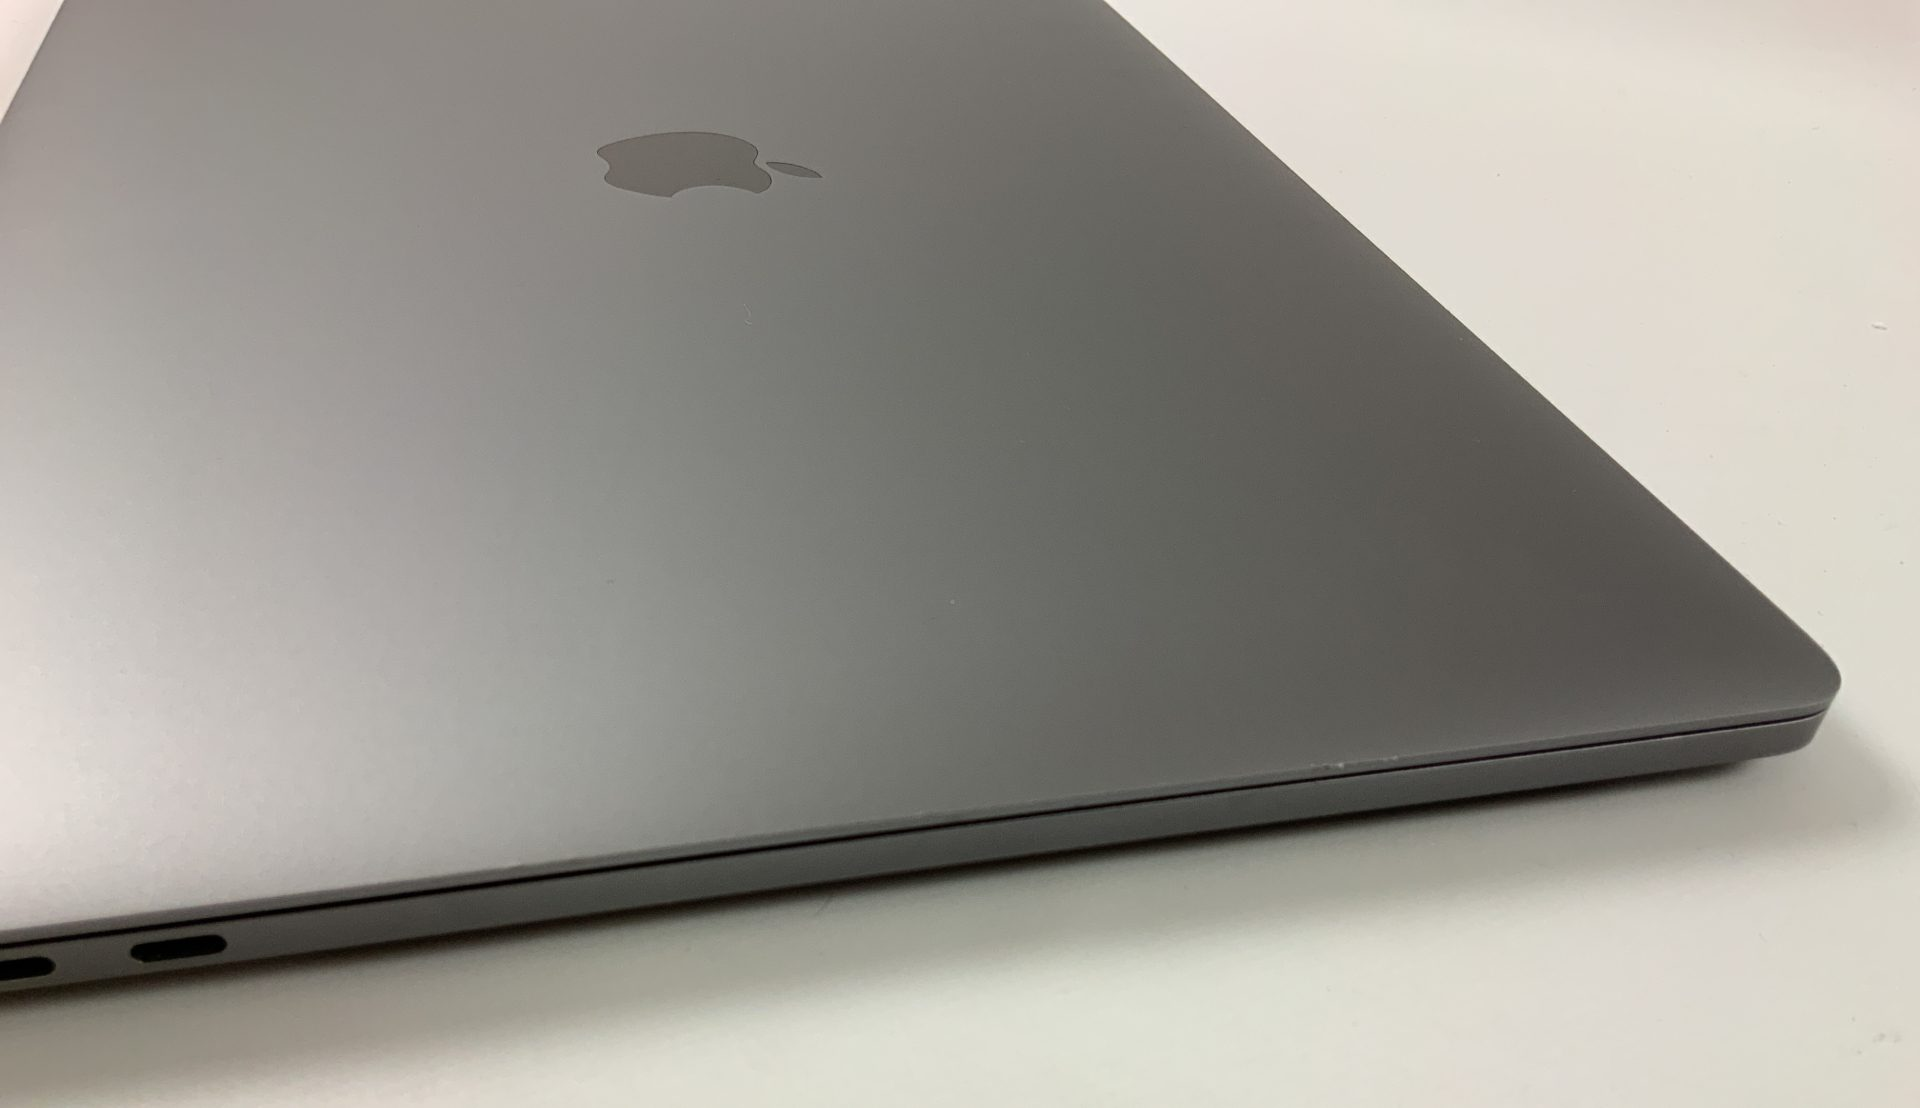 """MacBook Pro 15"""" Touch Bar Mid 2018 (Intel 6-Core i9 2.9 GHz 32 GB RAM 1 TB SSD), Space Gray, Intel 6-Core i9 2.9 GHz, 32 GB RAM, 1 TB SSD, Afbeelding 4"""